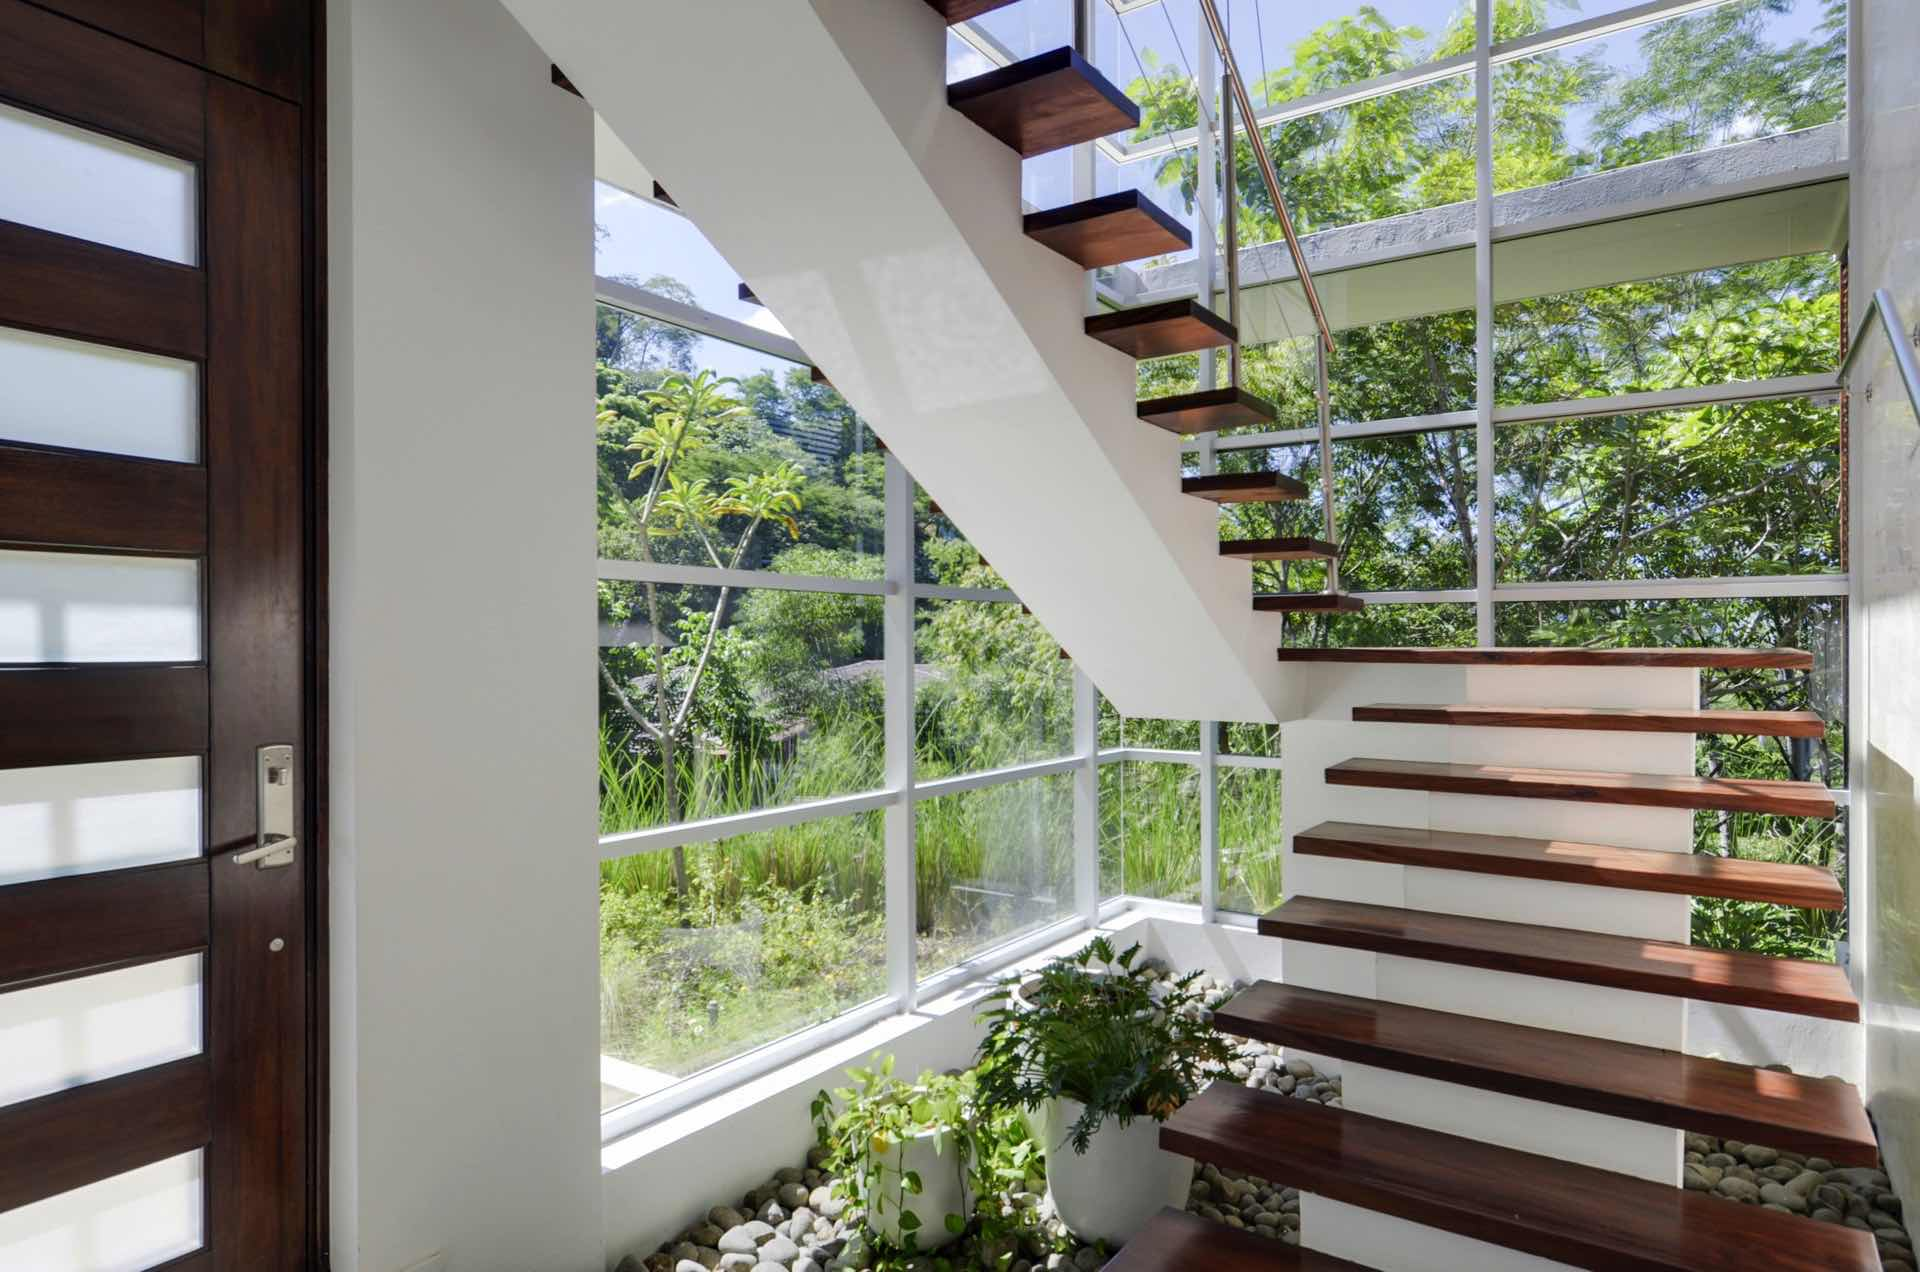 Floating stairway to second level